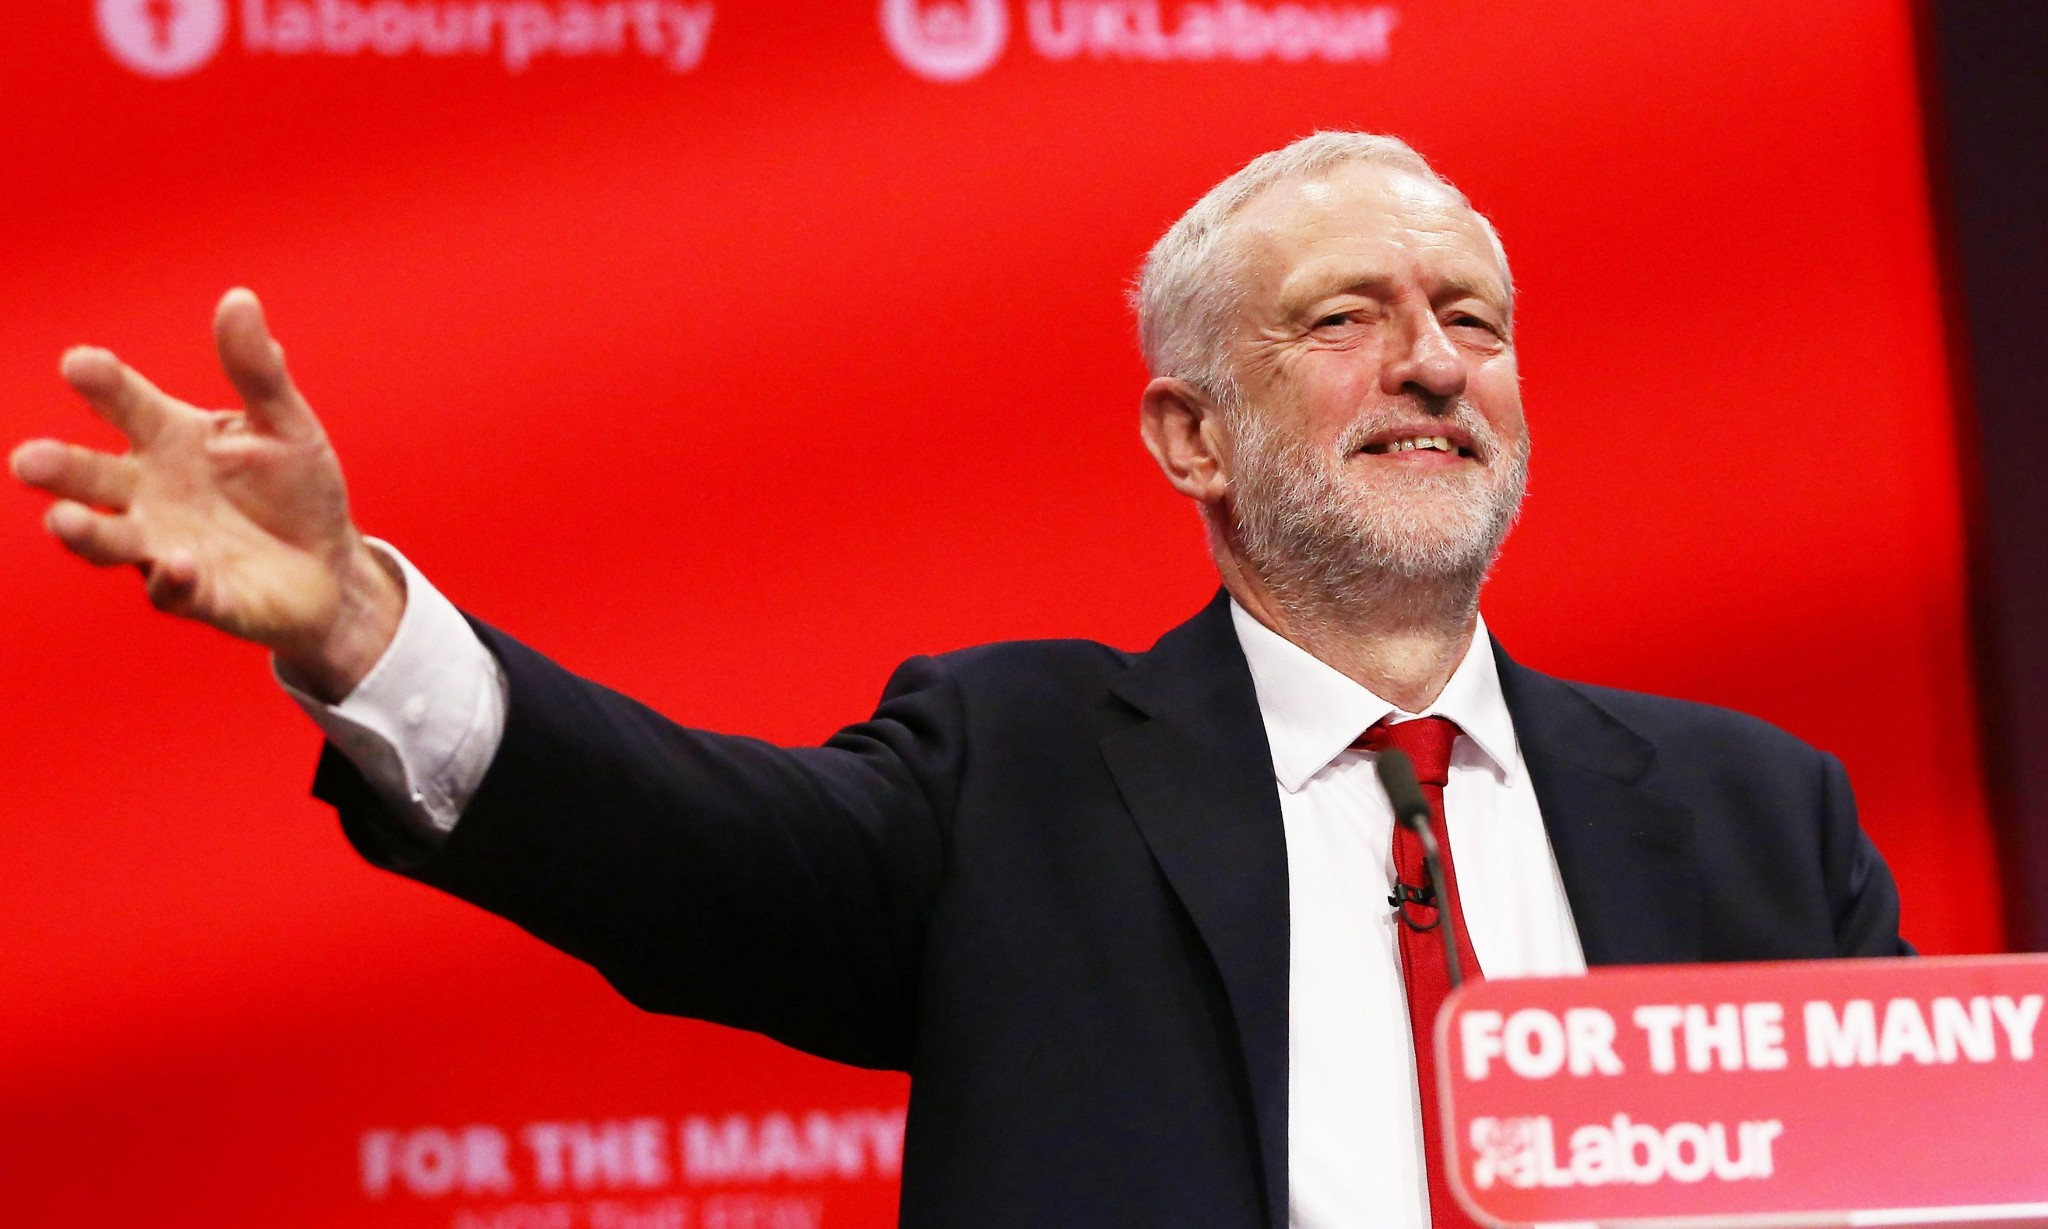 Jeremy Corbyn: neoliberalism is broken and we are now the centre ground